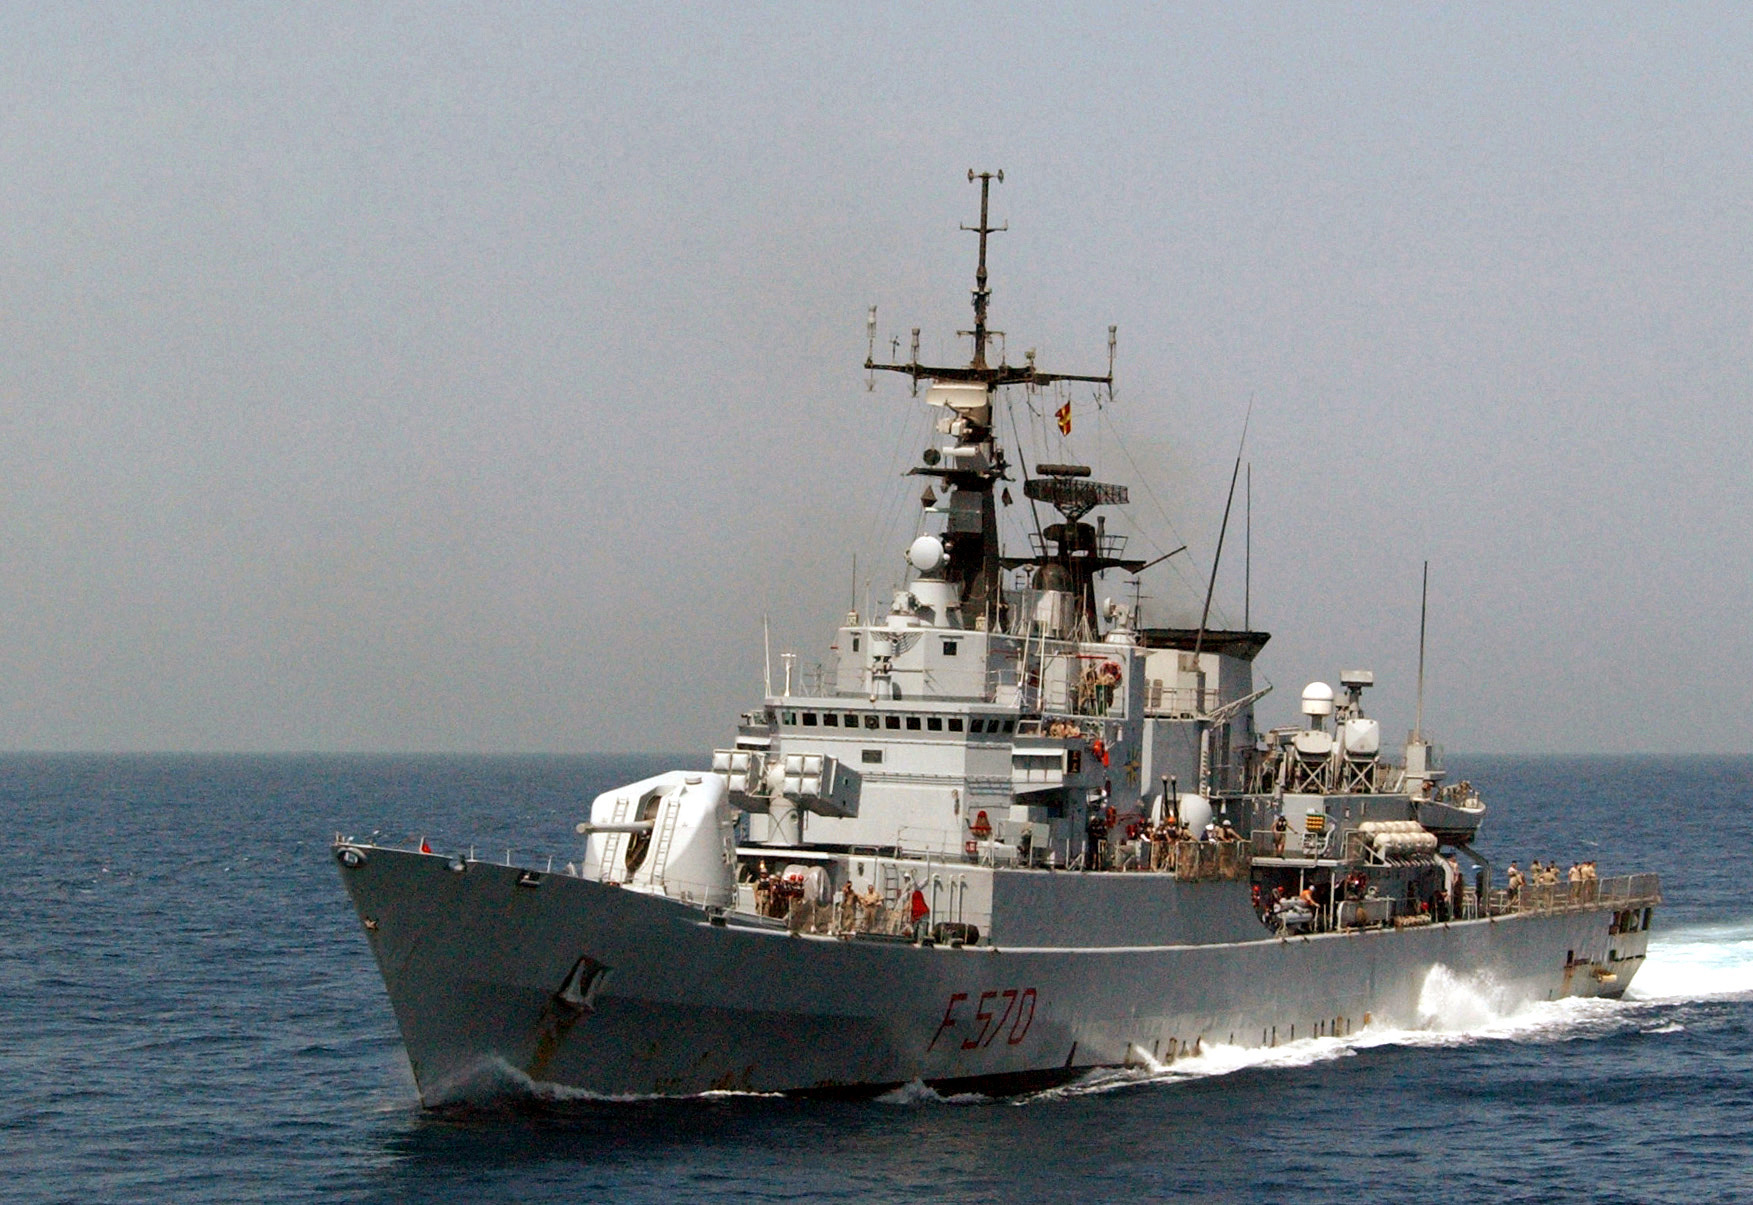 Port bow view of the Italian Navy Frigate, Marina Militare (MM) MAESTRALE (F 570), underway at high-speed, during Operation ENDURING FREEDOM